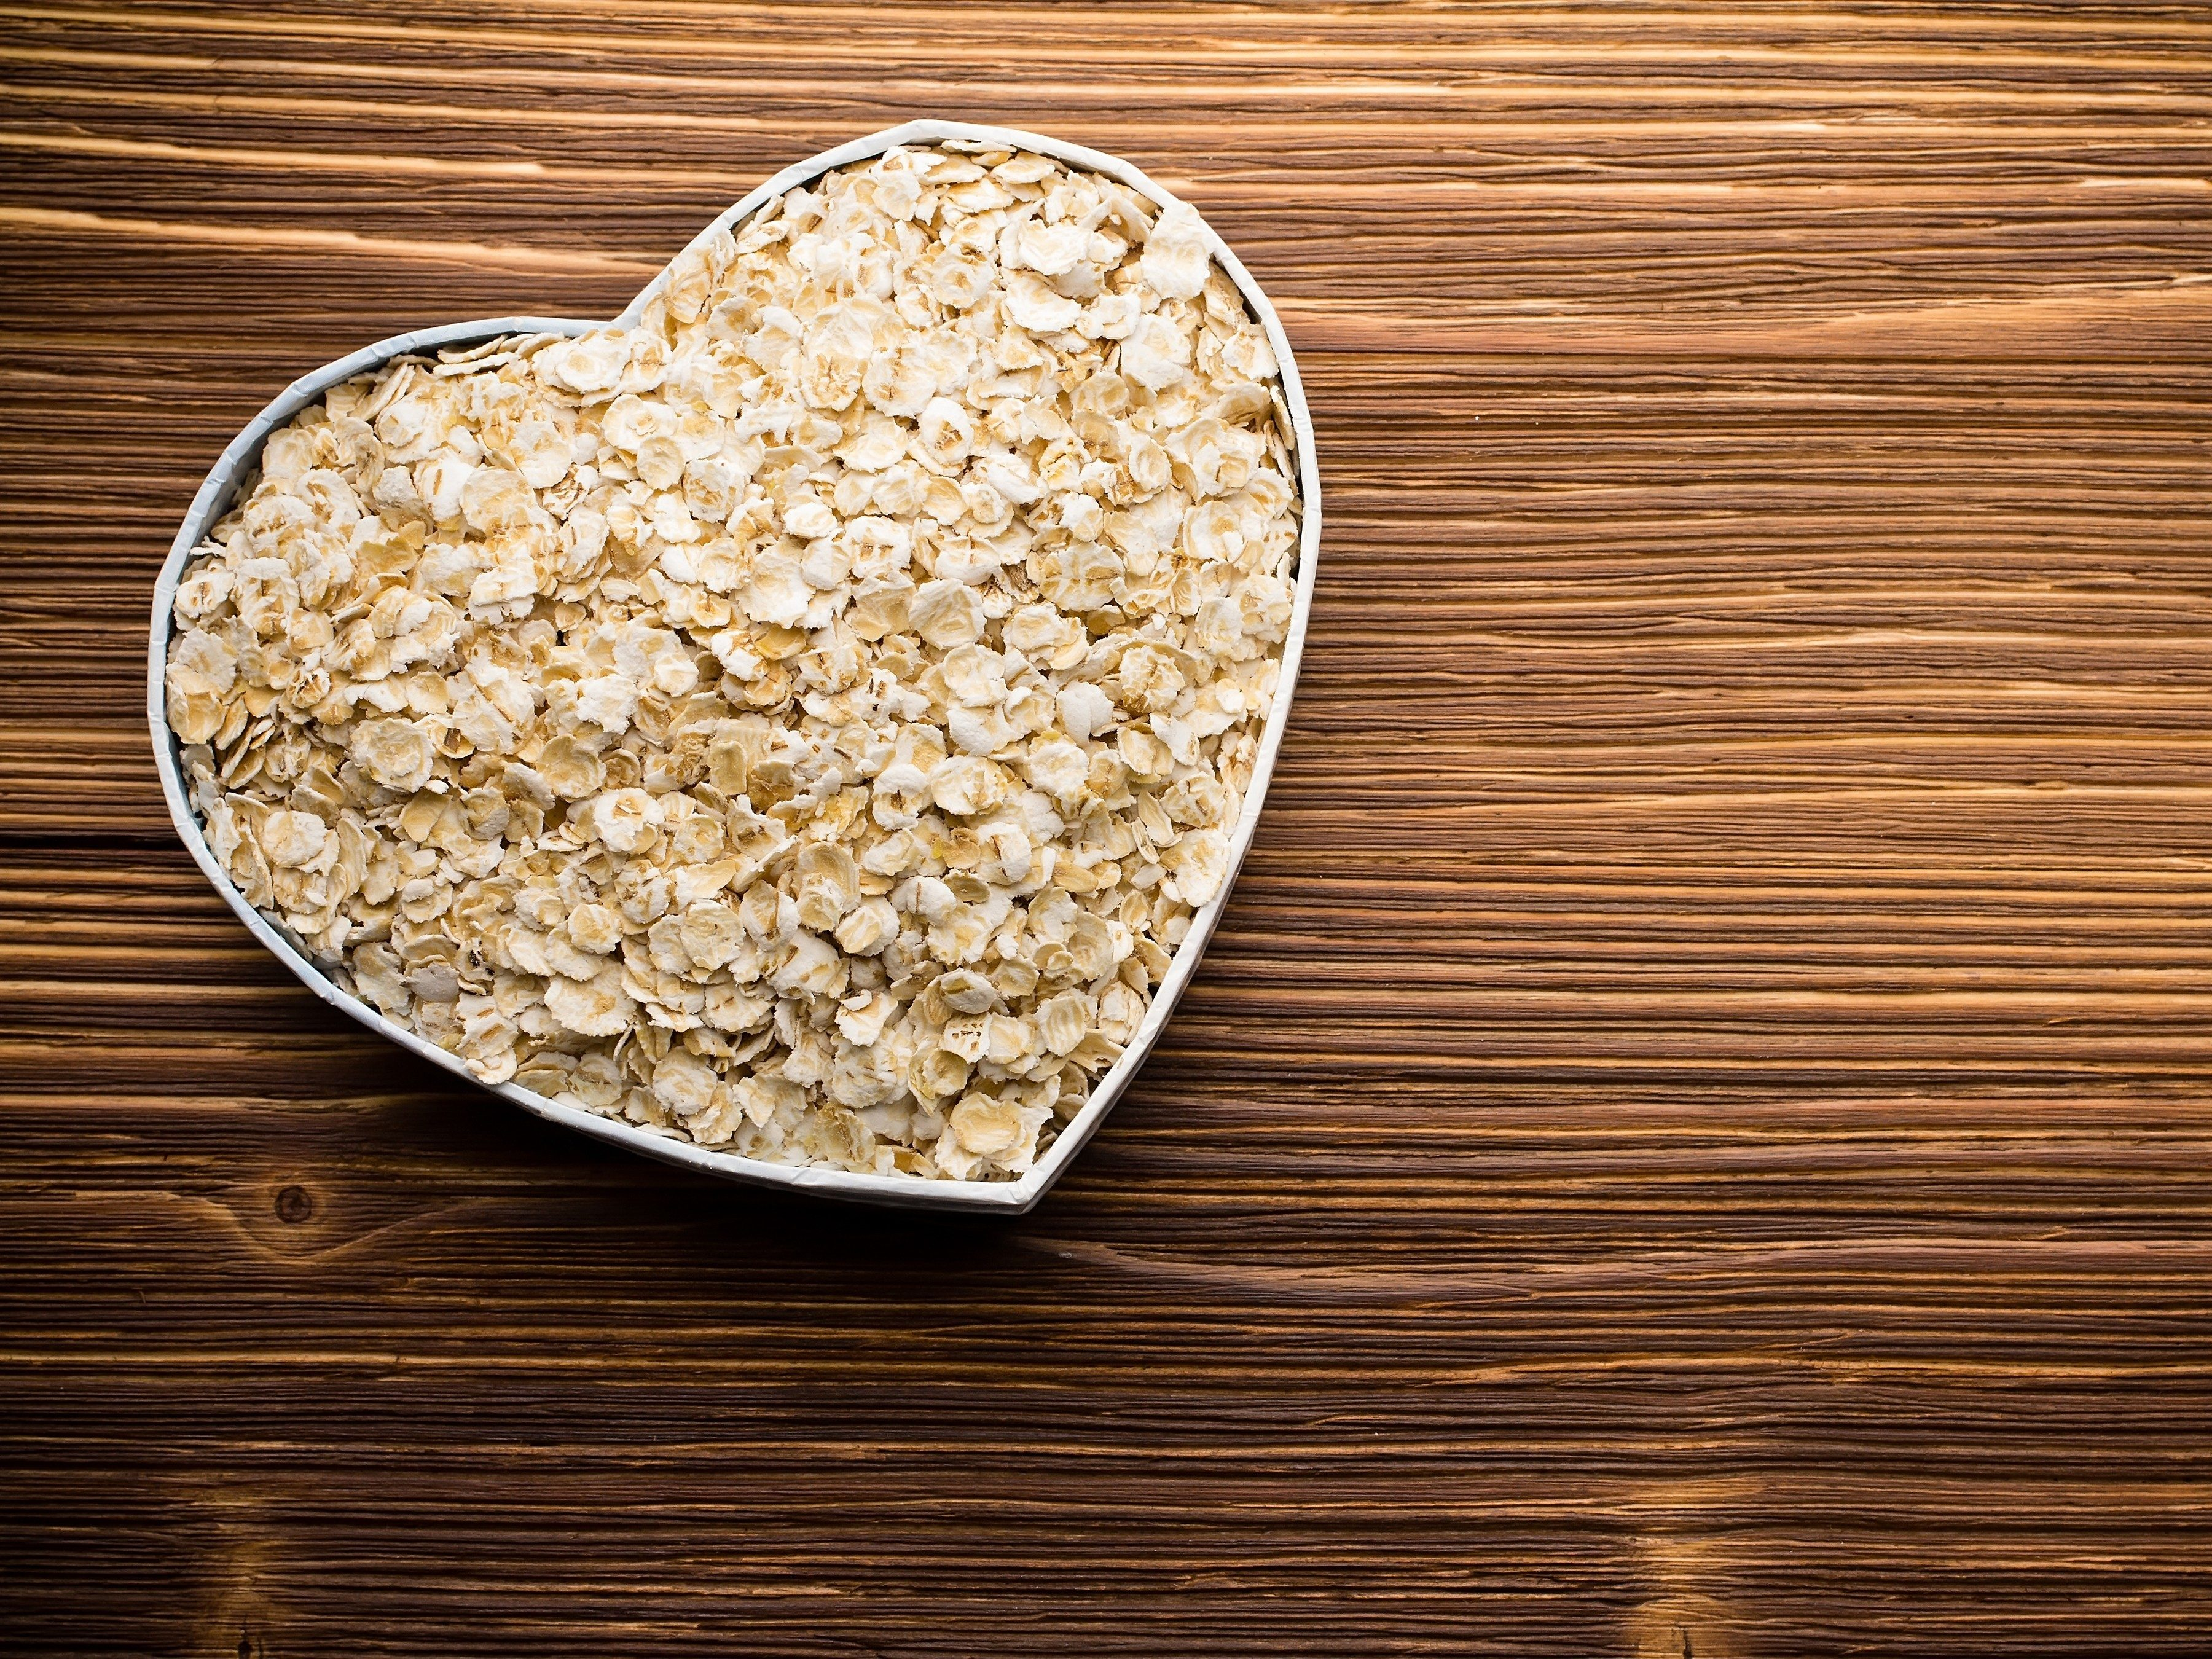 4. Prevent memory loss by eating whole grains and other low-glycemic index foods